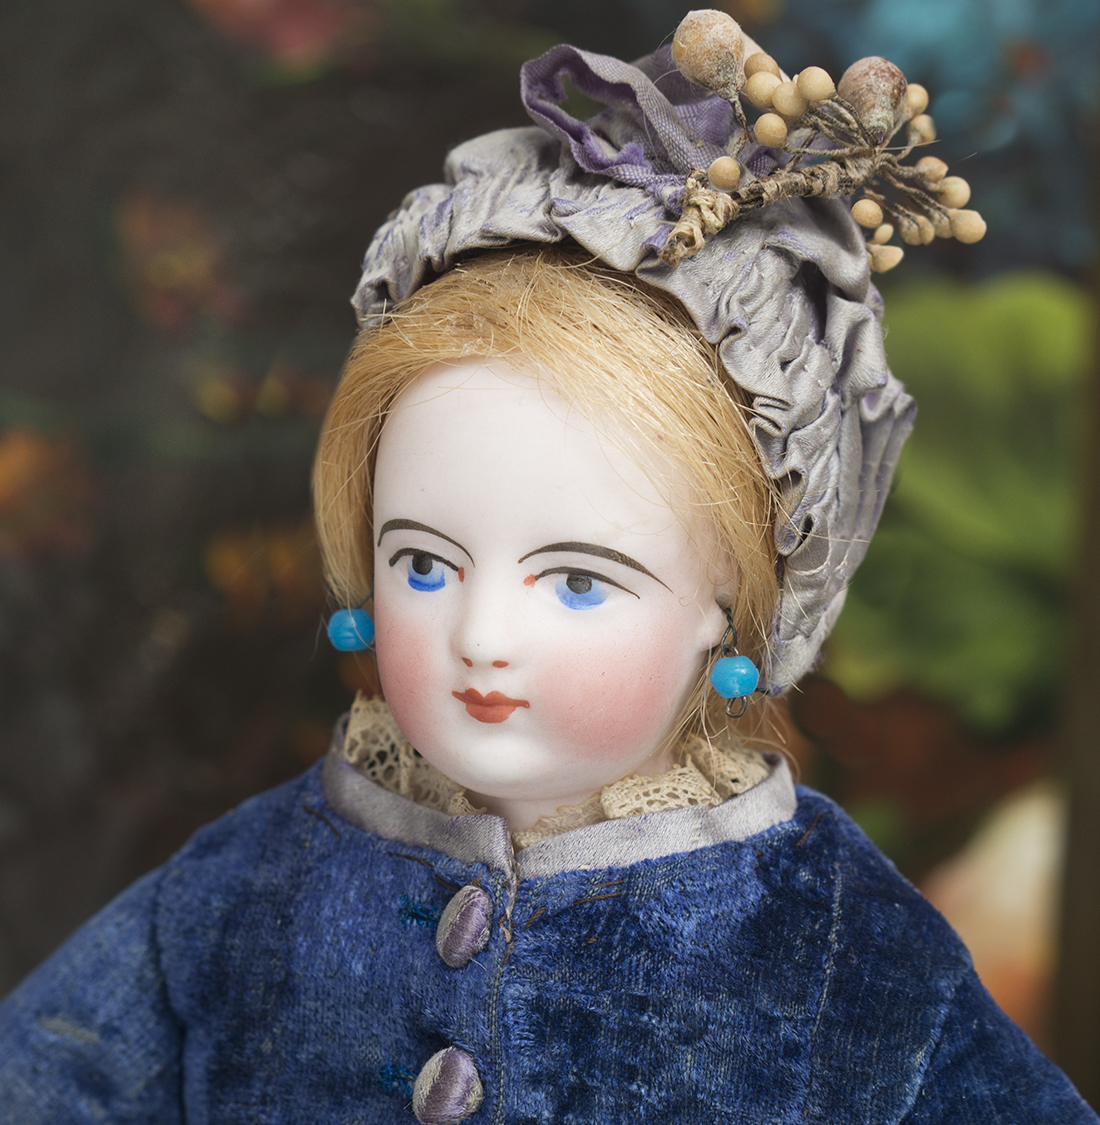 Small FG doll with painted eyes